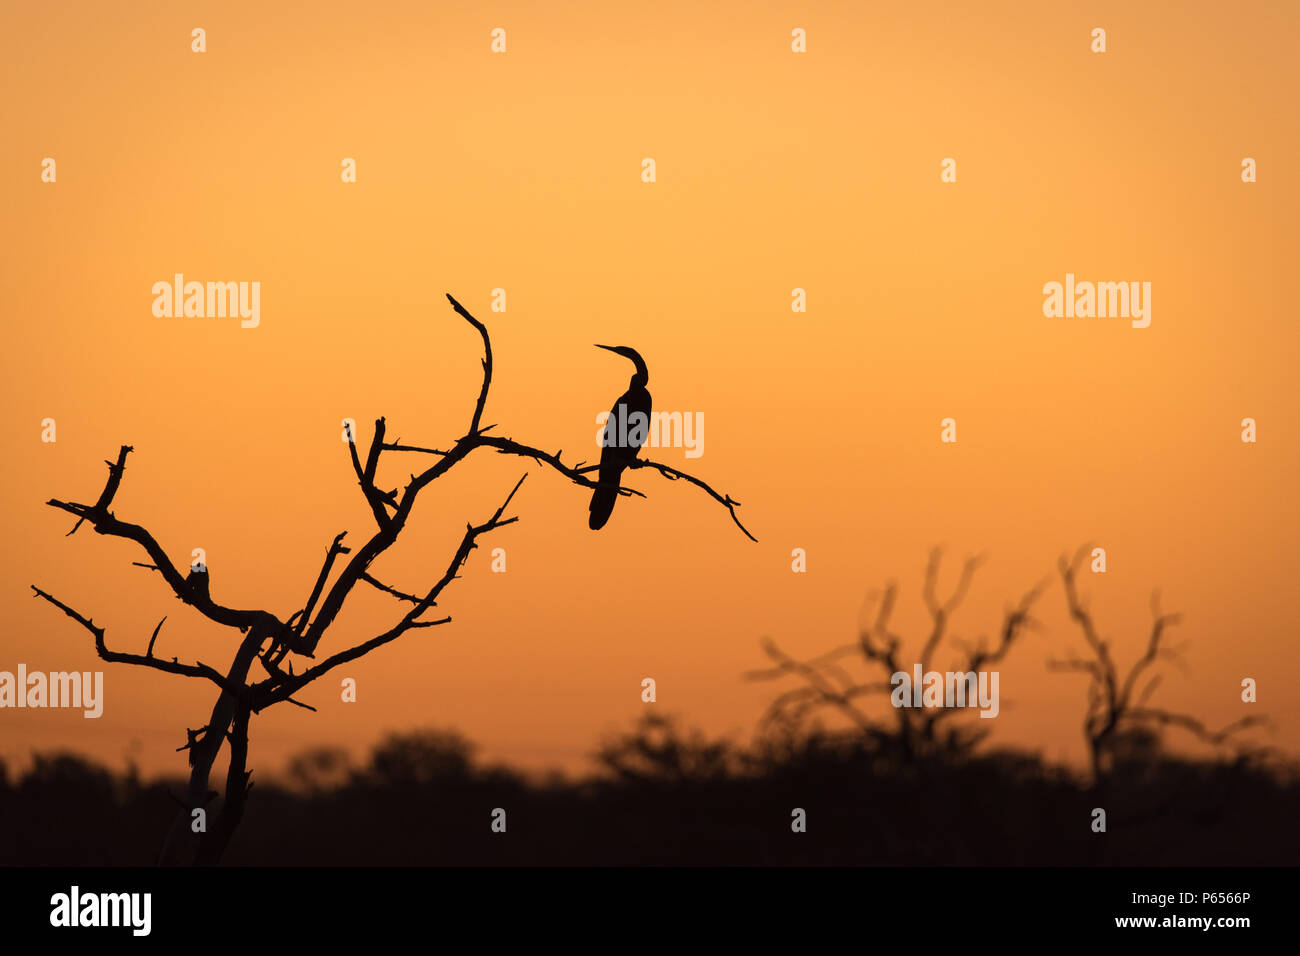 Silhouette of a cormorant in a tree at sunset - Stock Image